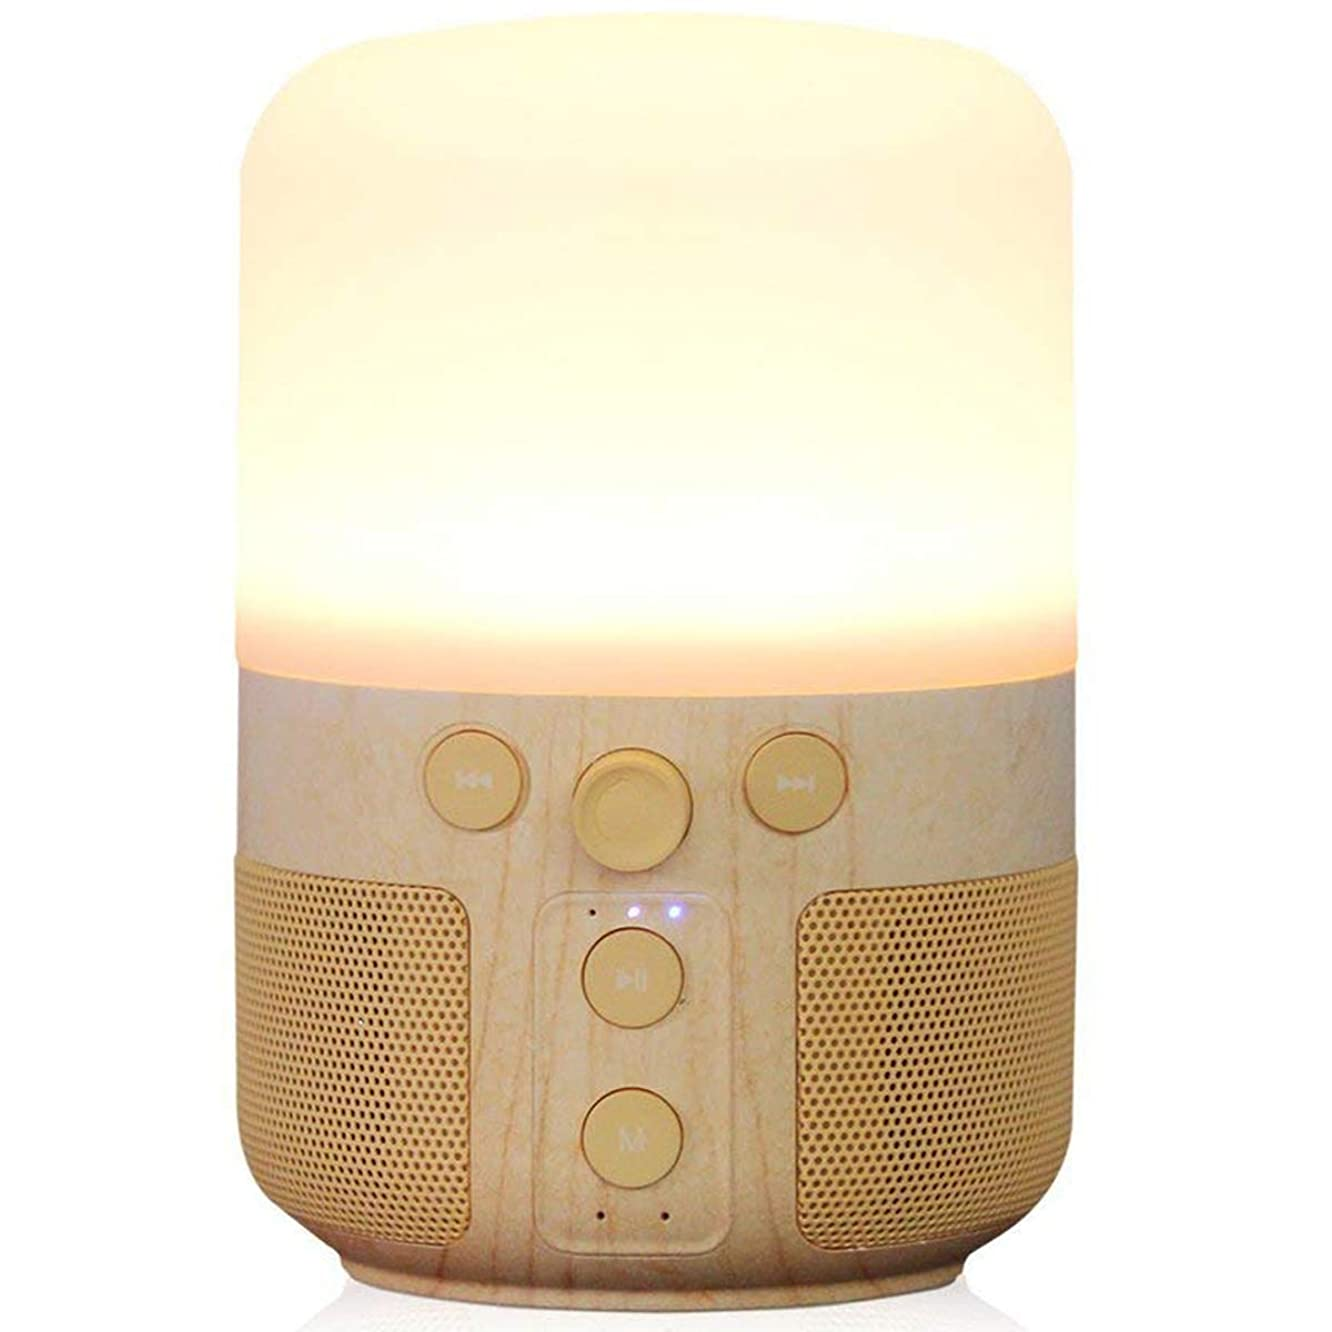 MYMAHDI Portable Wireless Bluetooth 4.0 Speaker and LED Light Lamp with Quality Sound, Touch Light Sensor, MP3 Player, Micro TF SD Card, AUX, USB, 4000mAh Battery-Bamboo Design